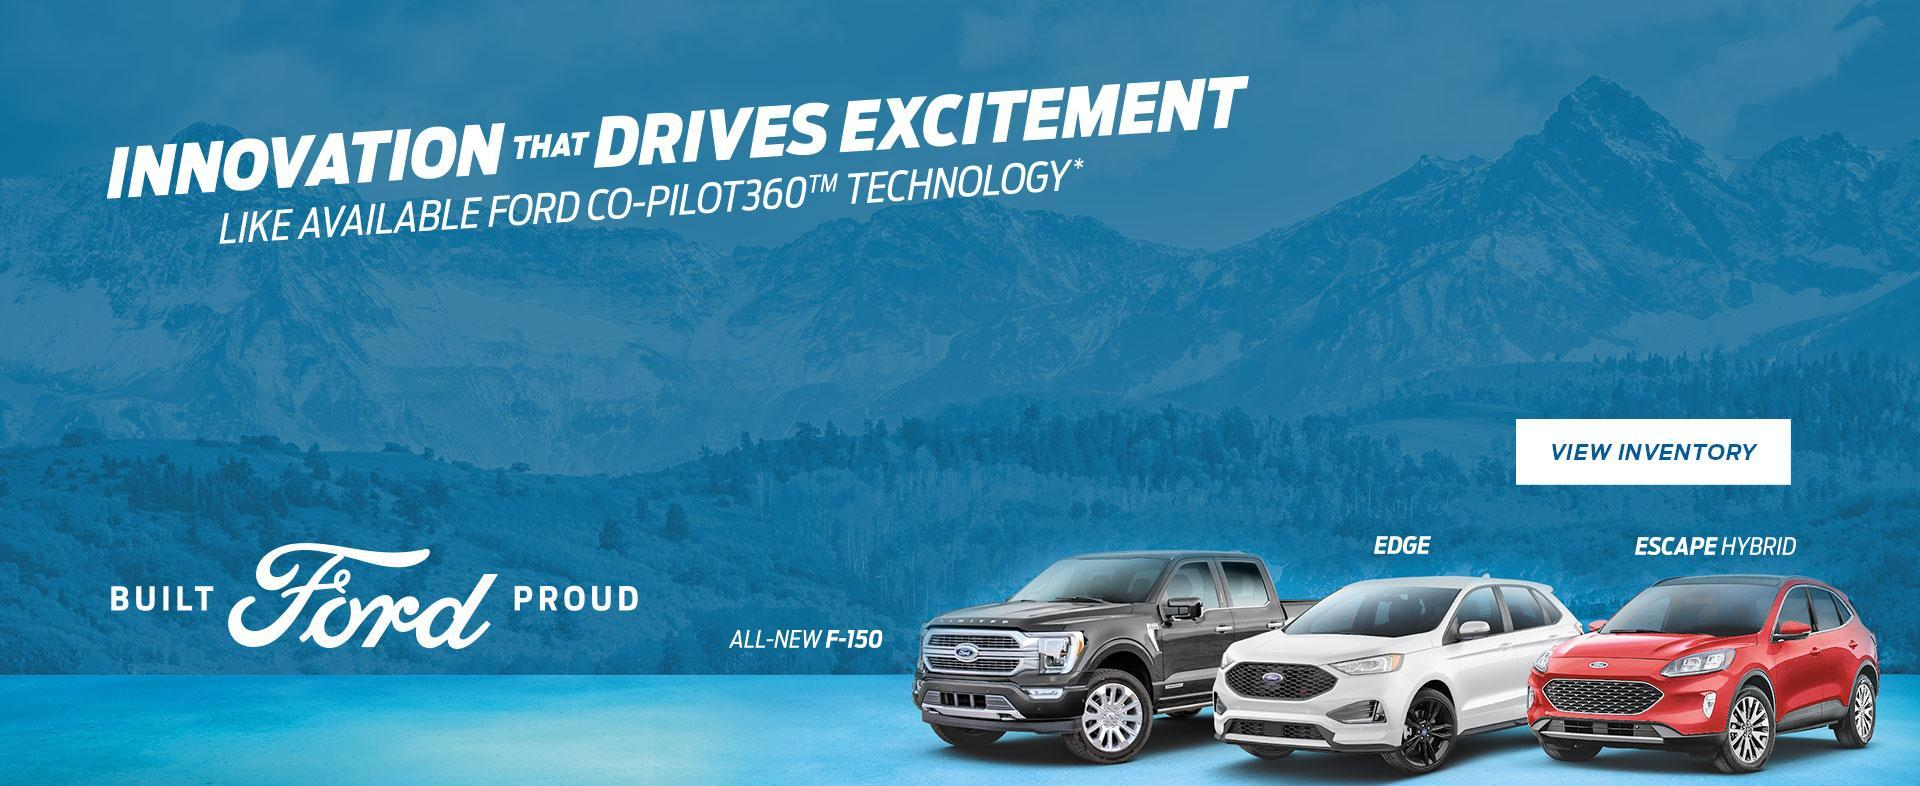 Ford of Canada Innovation That Drives Excitement